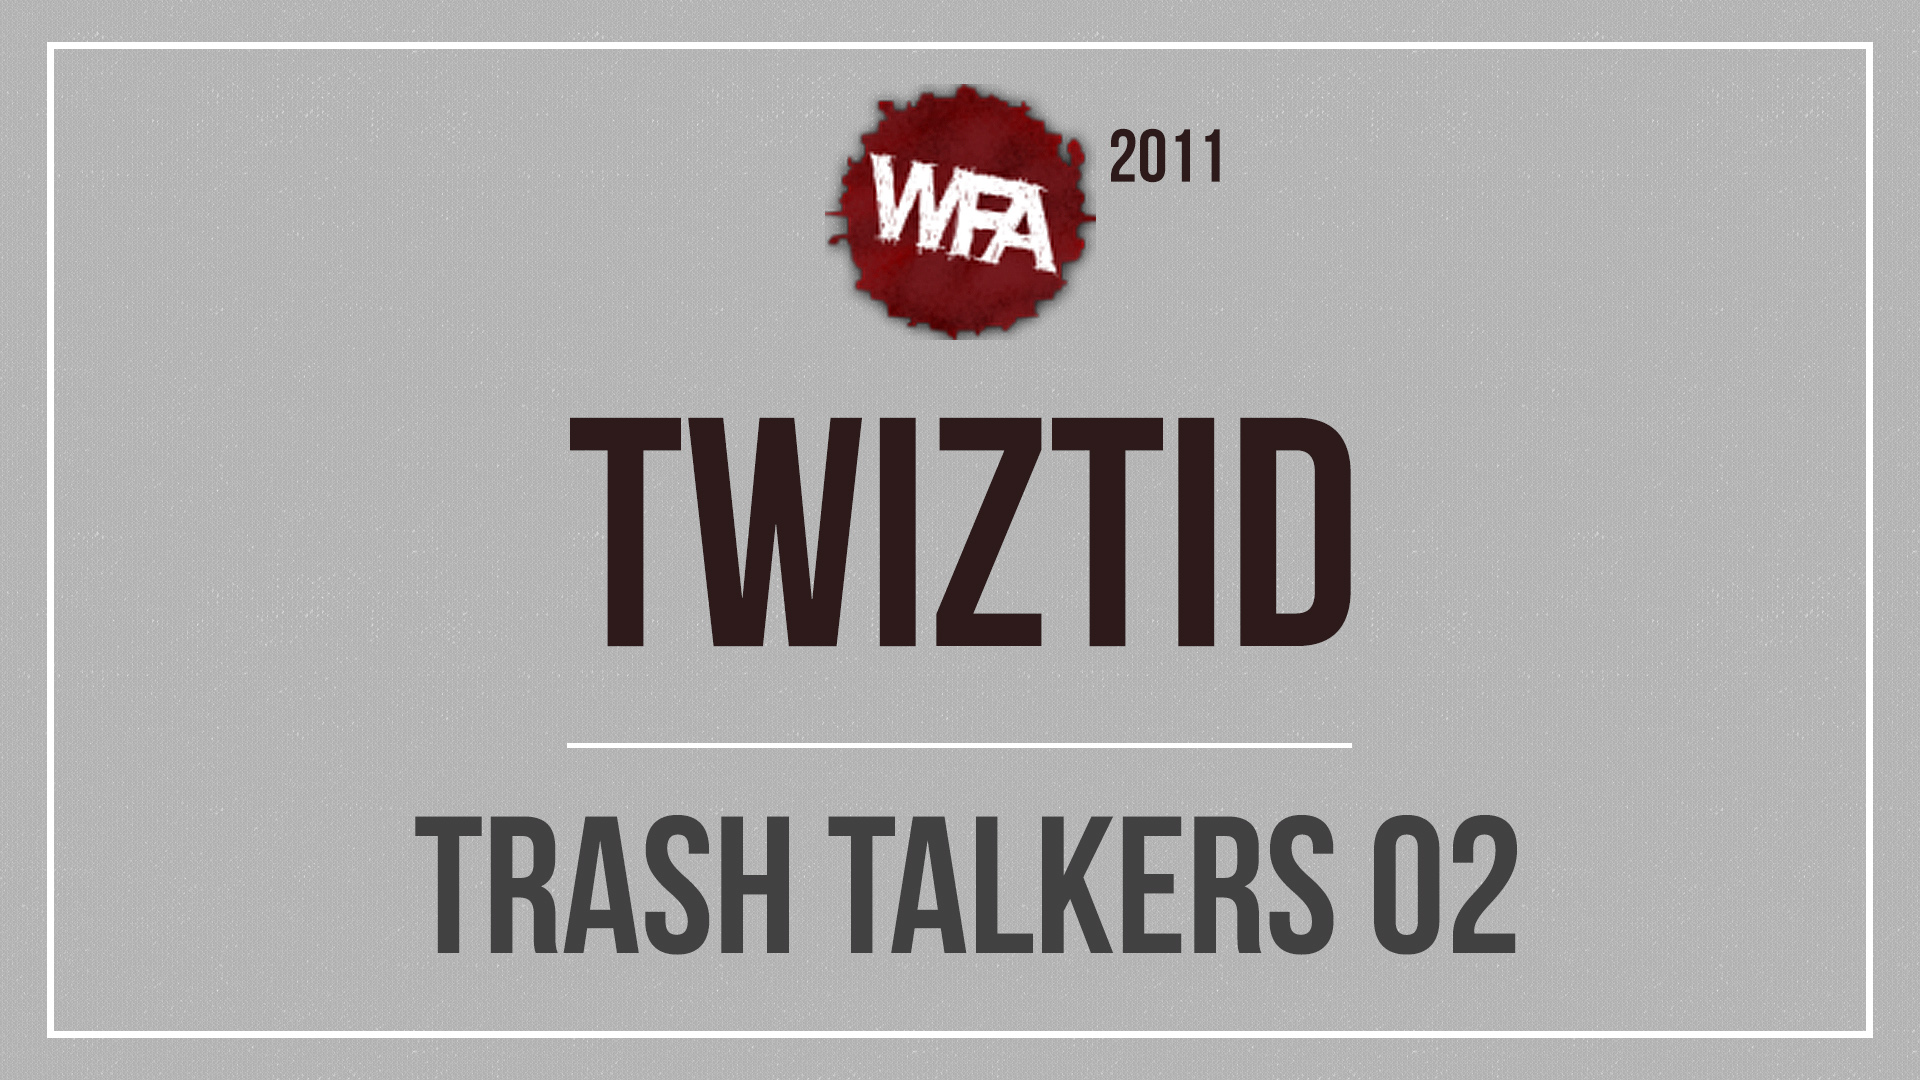 WFA 2011 Trash Talkers 02